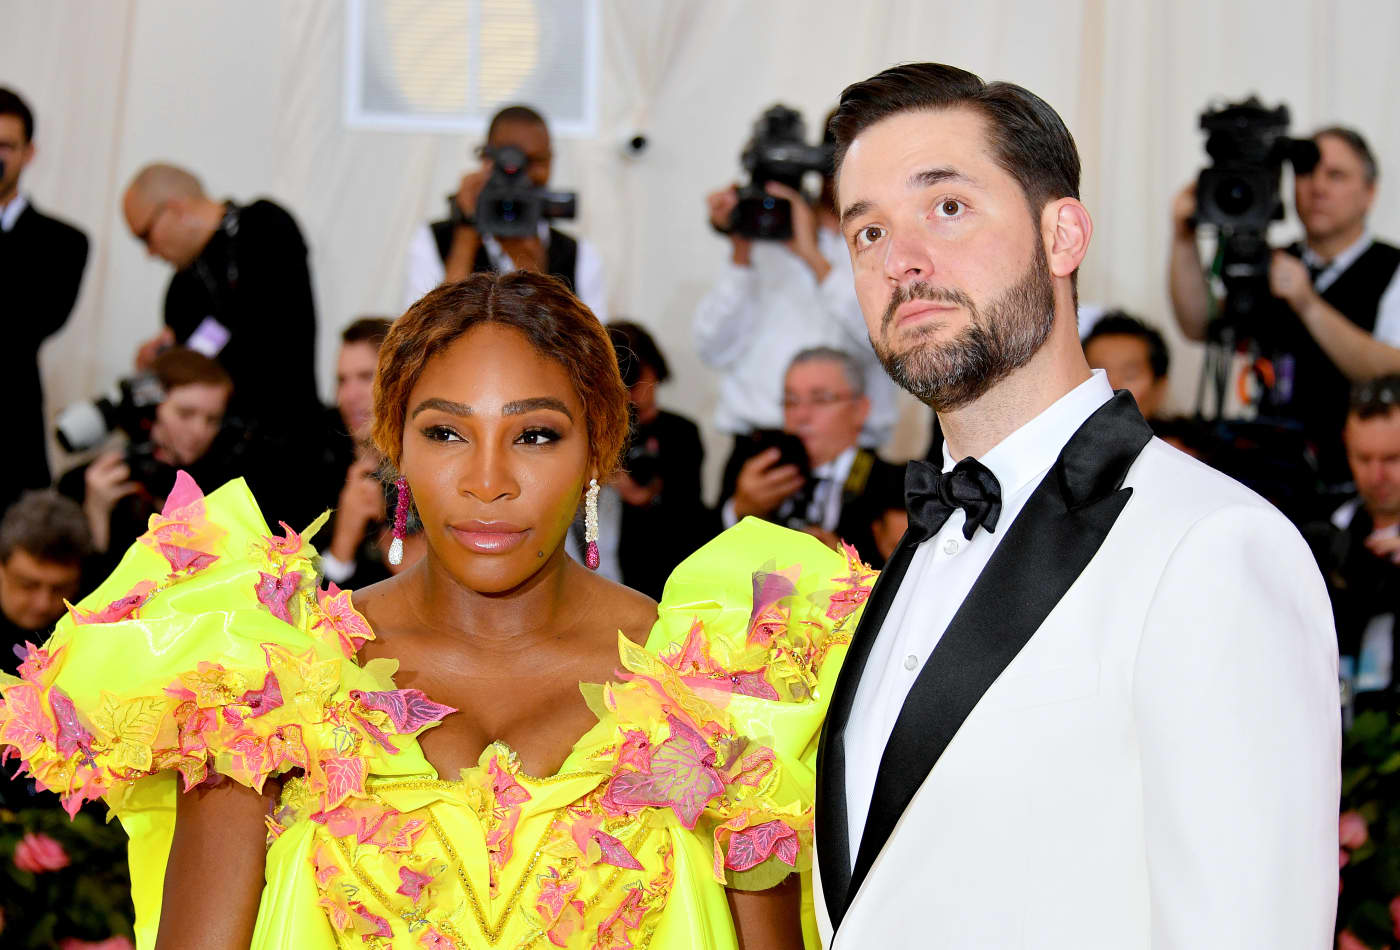 This start-up backed by Serena Williams and Alexis Ohanian gives users bitcoin rewards for their online purchases